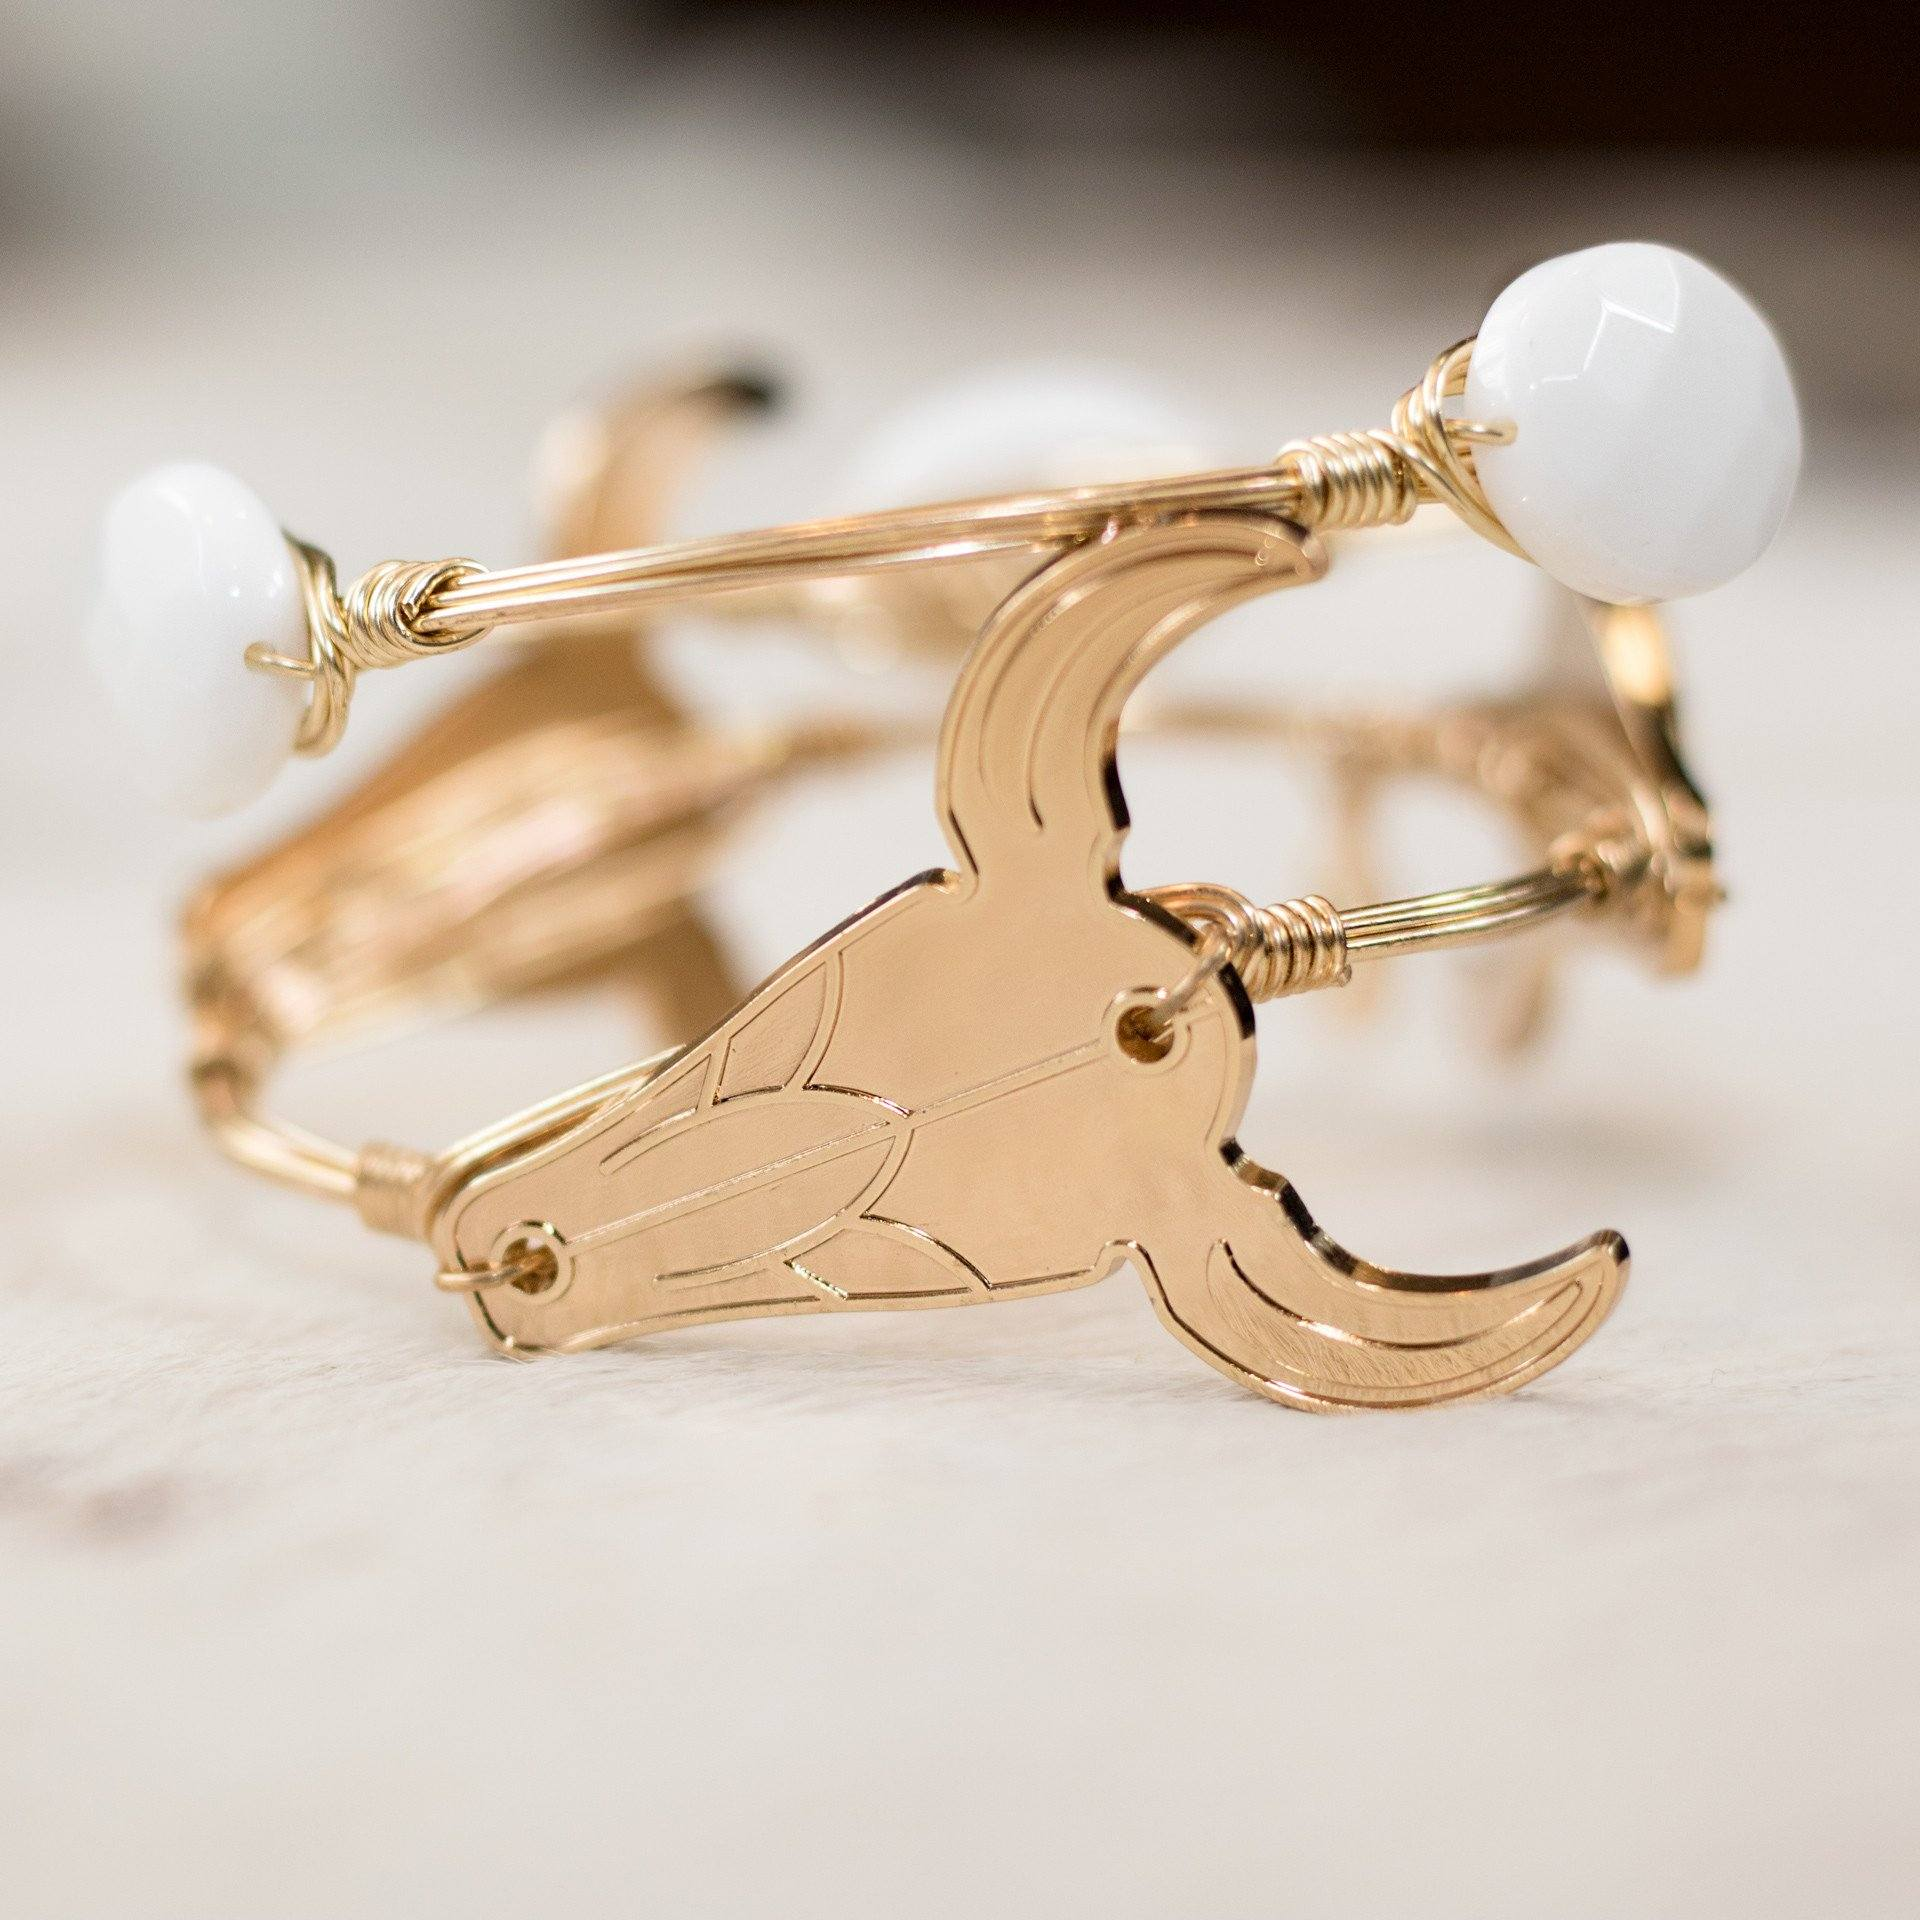 The Calhoun Bangle Bracelet - Arlo and Arrows